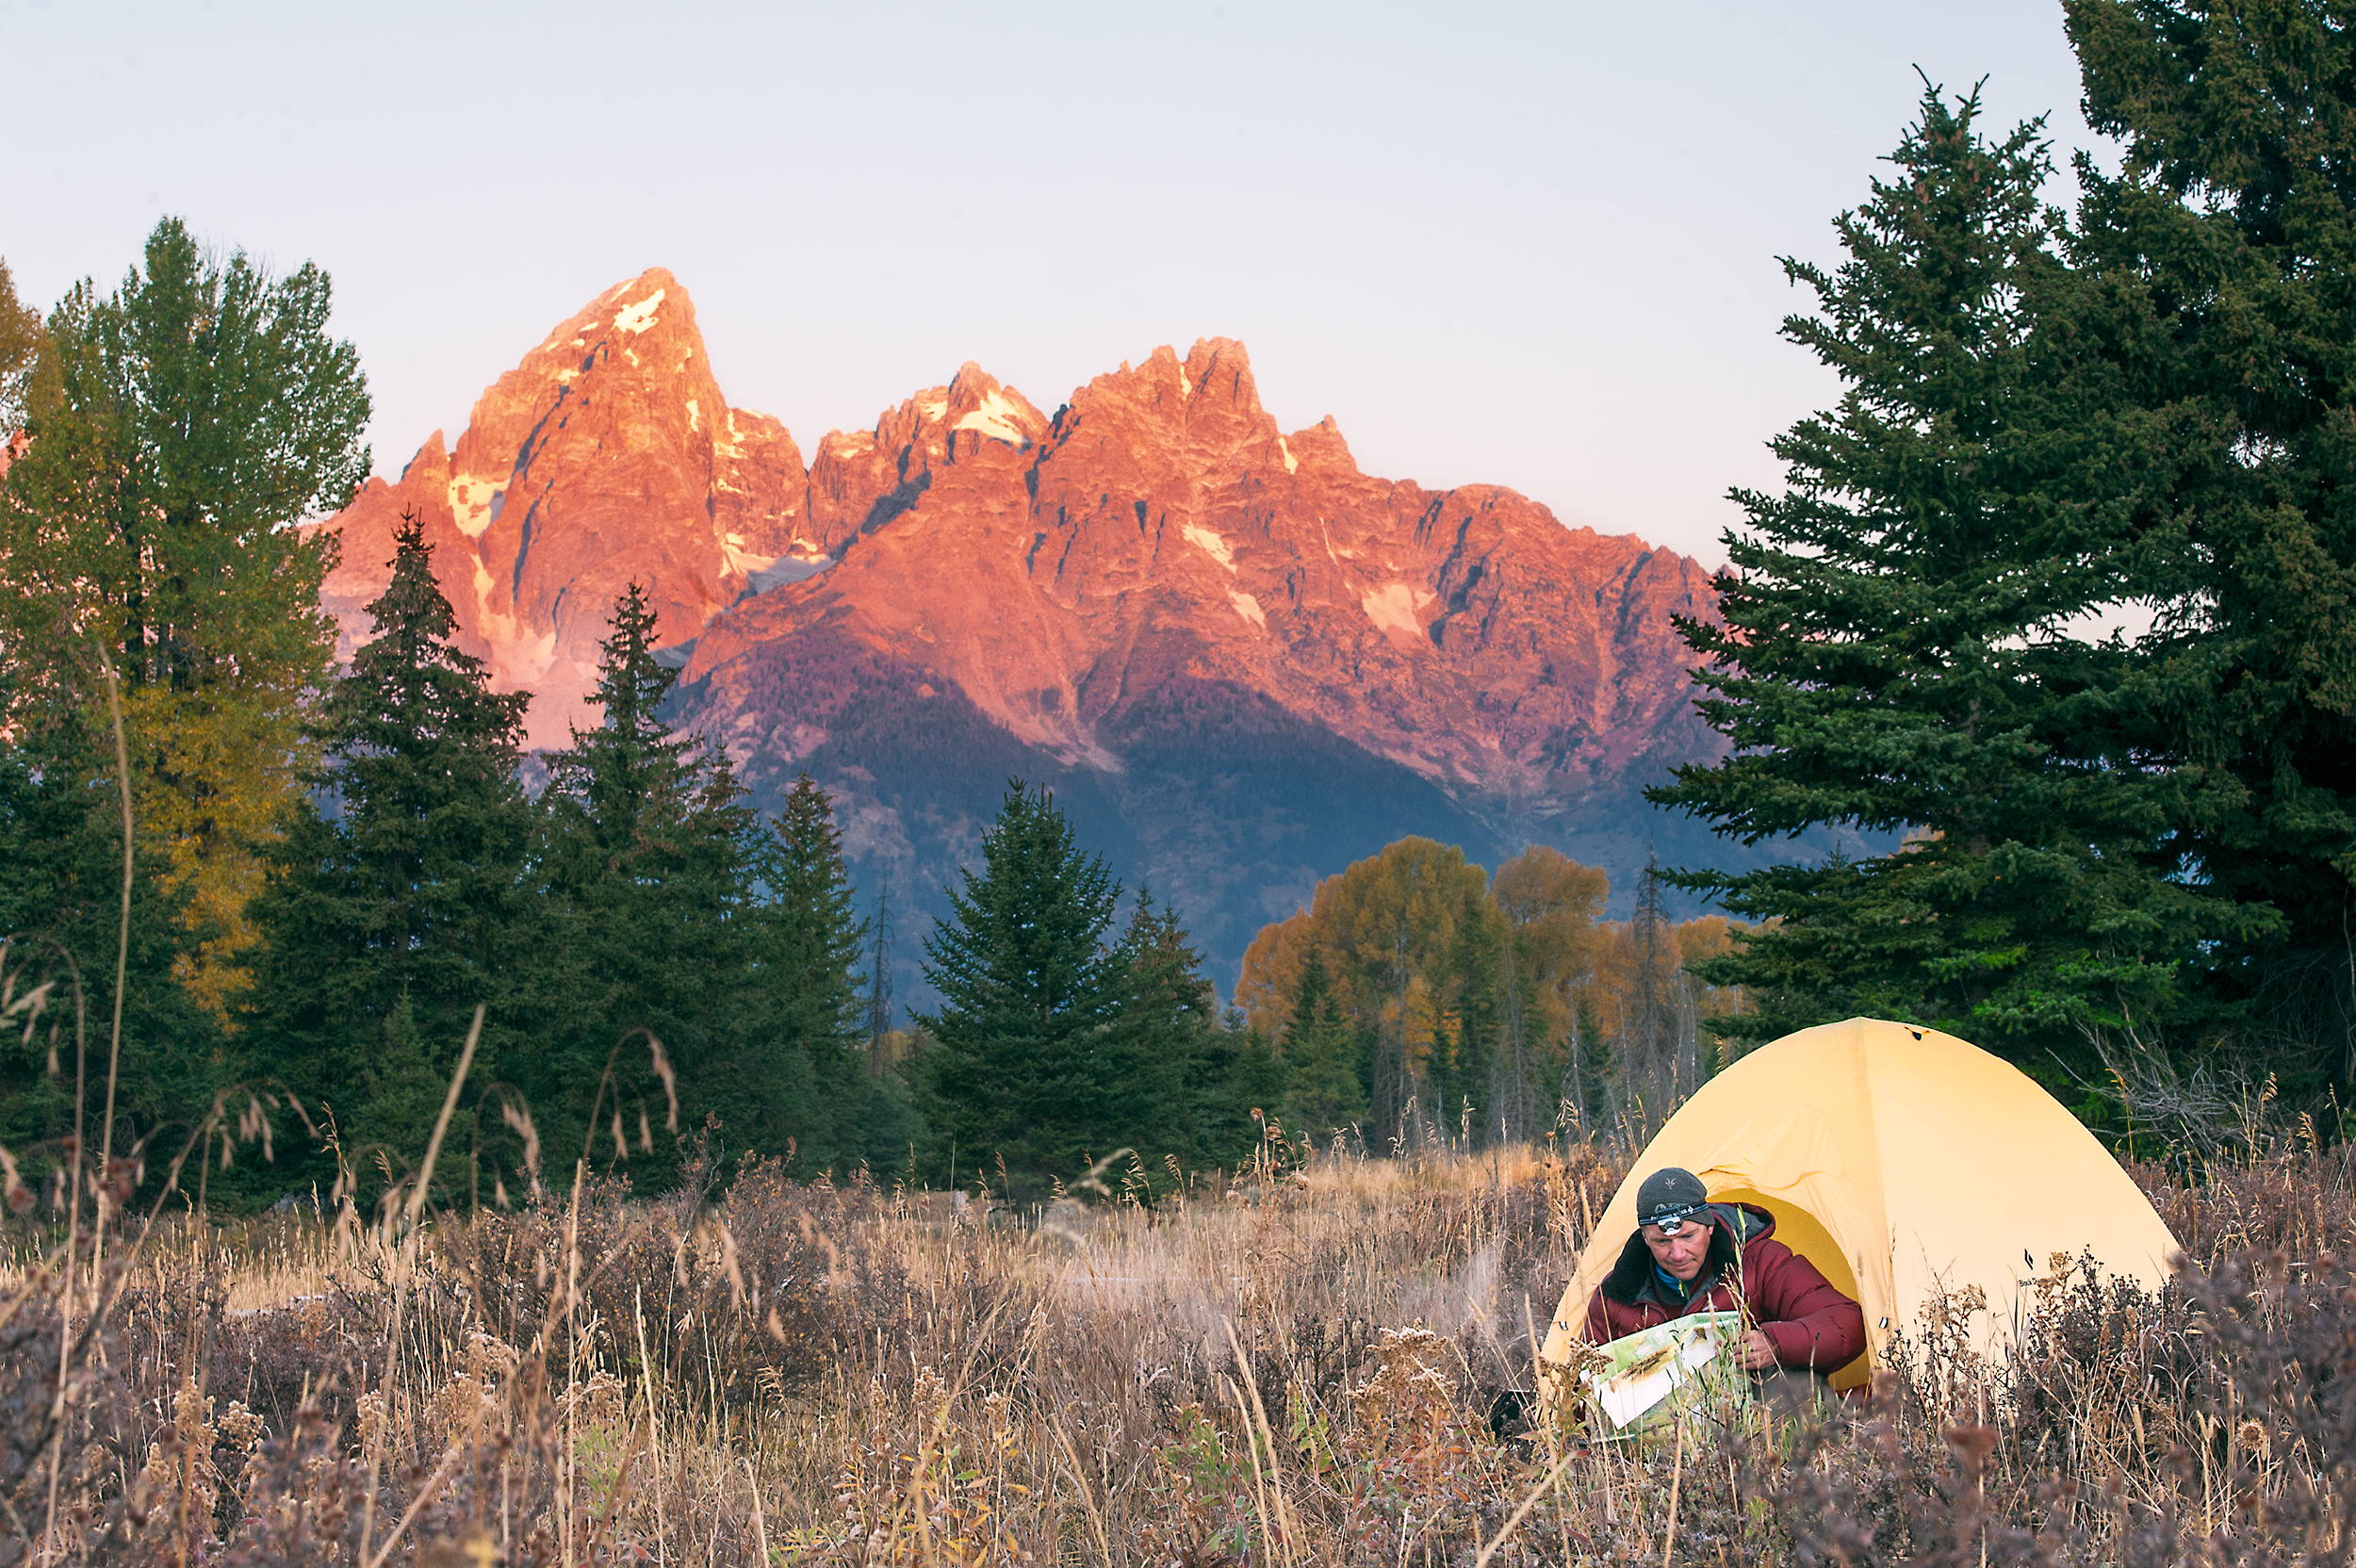 A morning lifestyle image of a camper in Wyoming